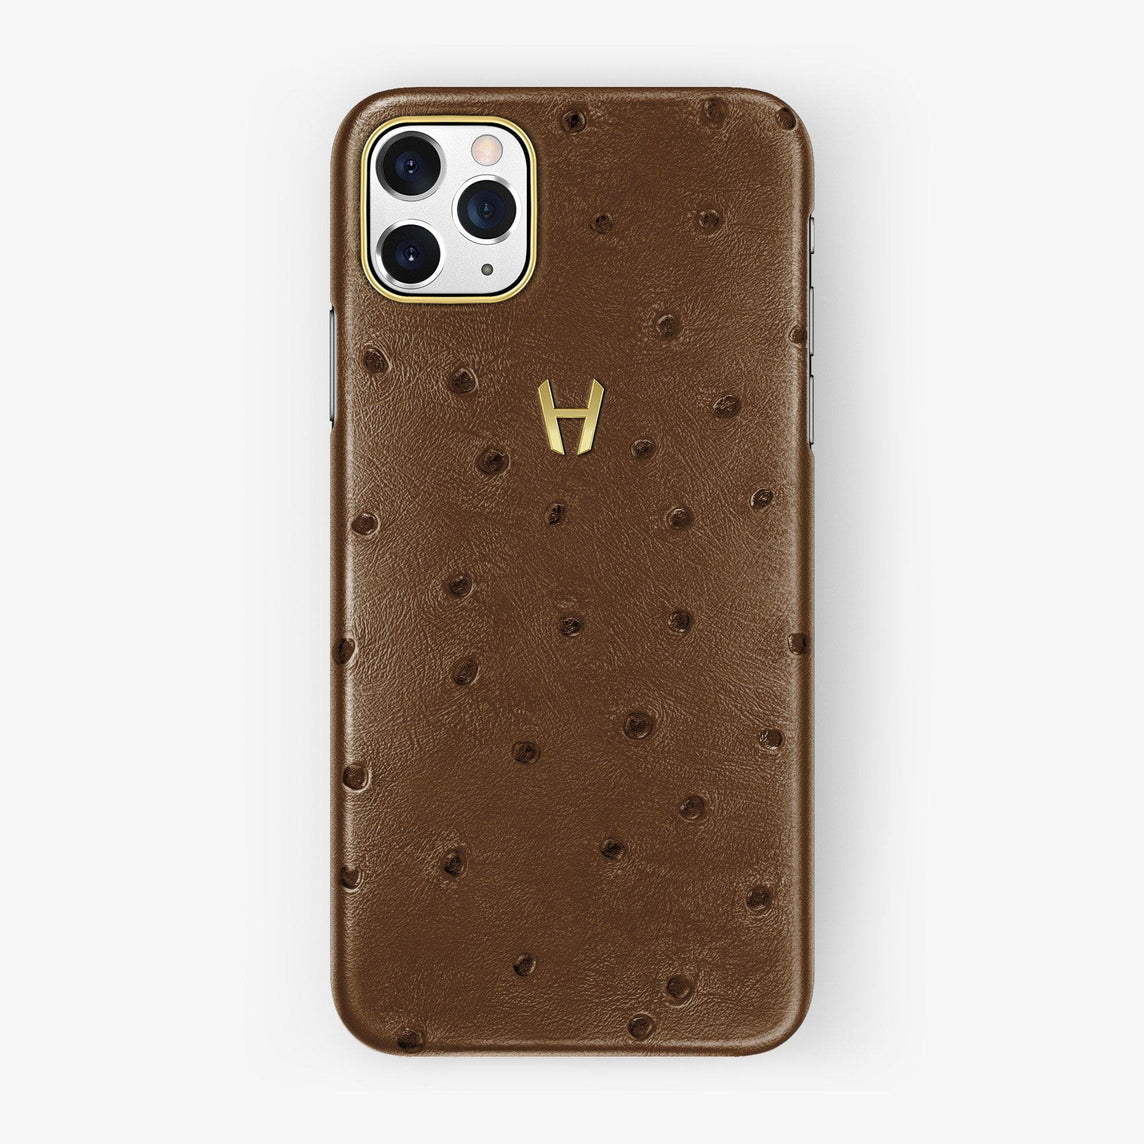 Ostrich Case iPhone 11 Pro Max | Tobacco - Yellow Gold